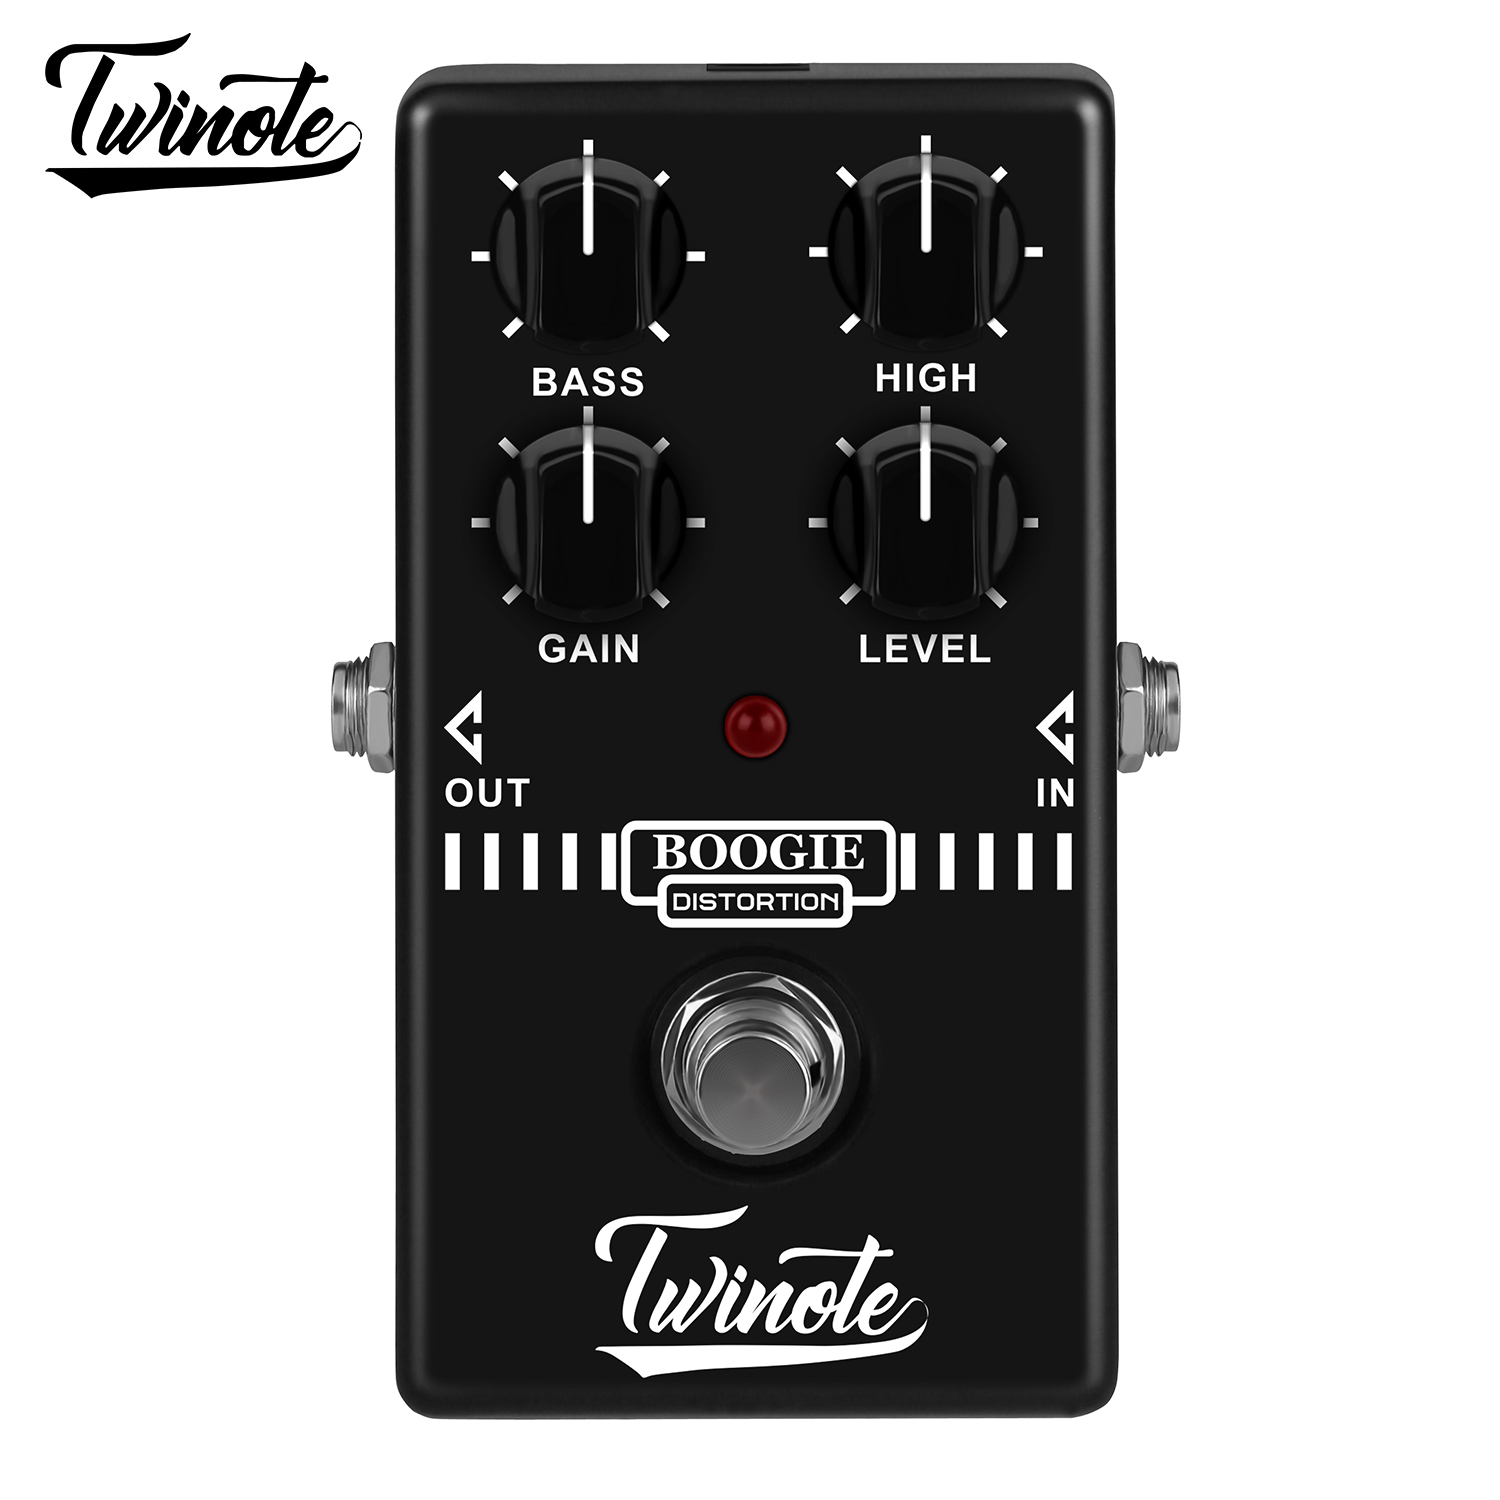 Twinote Boogie Dist Electric Guitar Effects Pedal AMP Simulator Guitar Accessories Old School Distortion Tone Stompbox